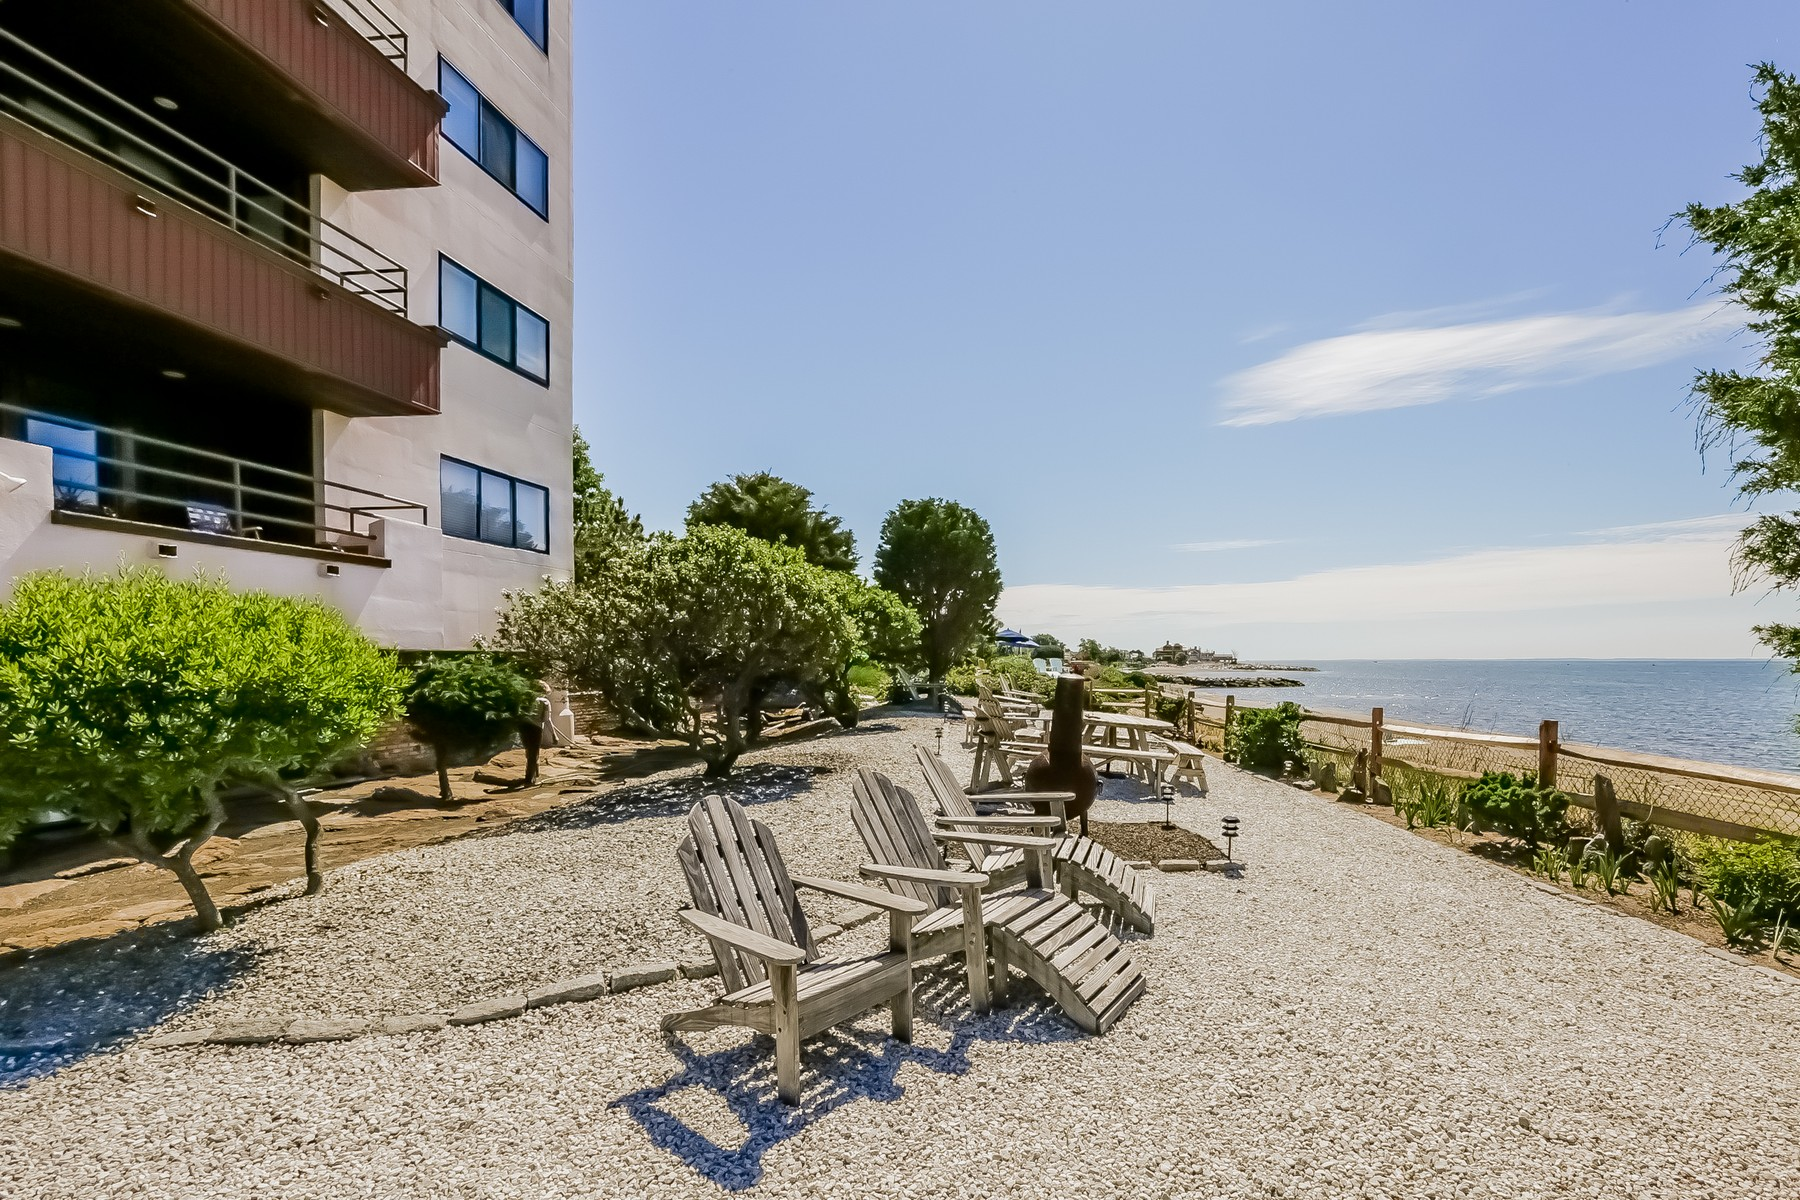 for Sale at Chic Updated Beachfront Front Condo 10 Pine Creek Avenue 301W Fairfield, Connecticut 06824 United States